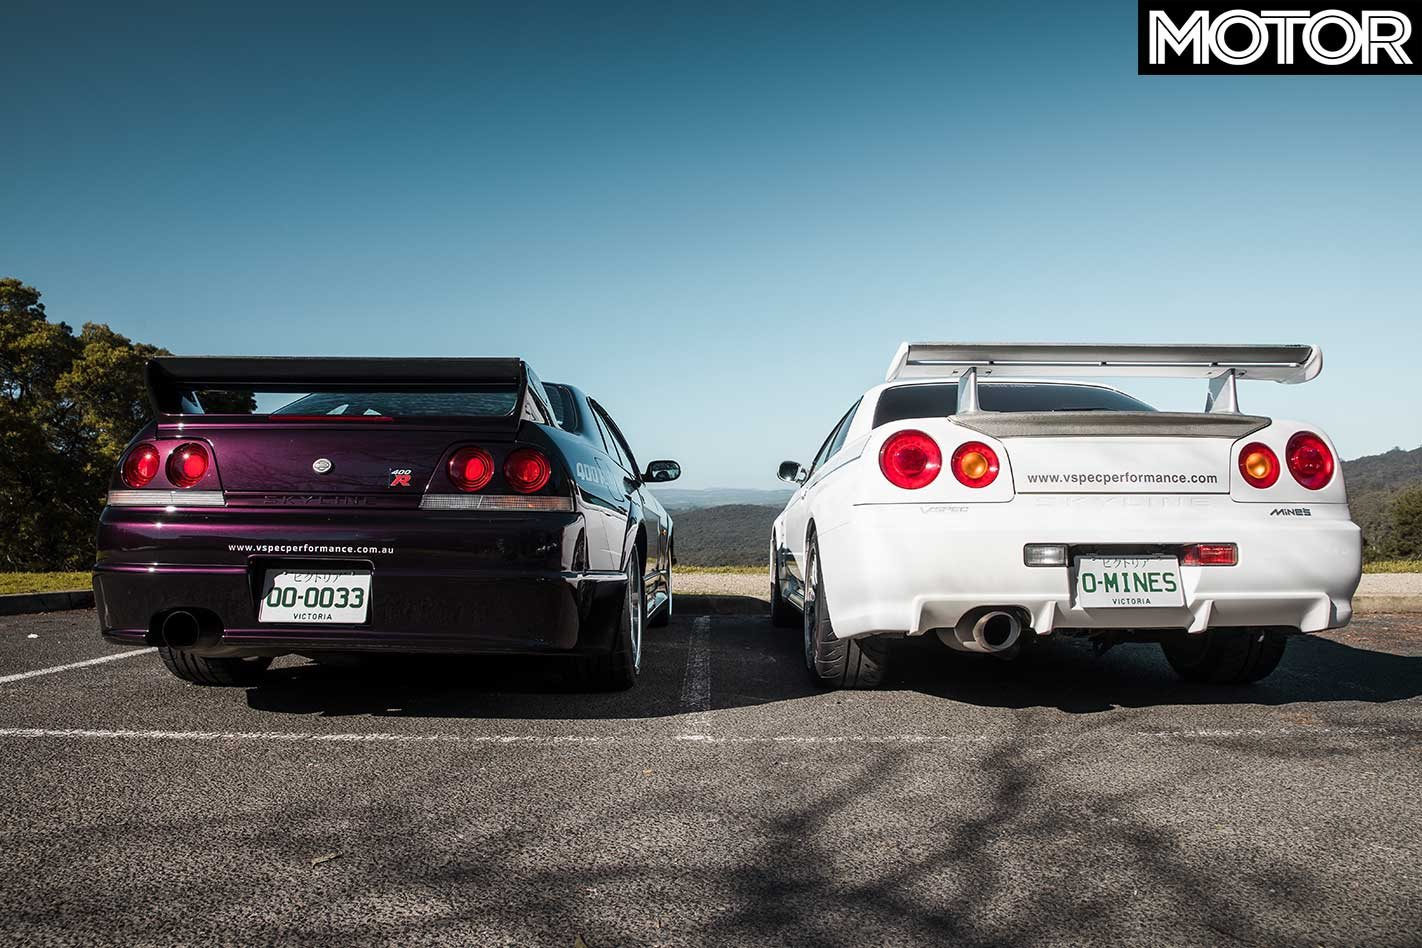 Nismo Skyline 400r Vs Mine S R34 Skyline Gt R Comparison Review